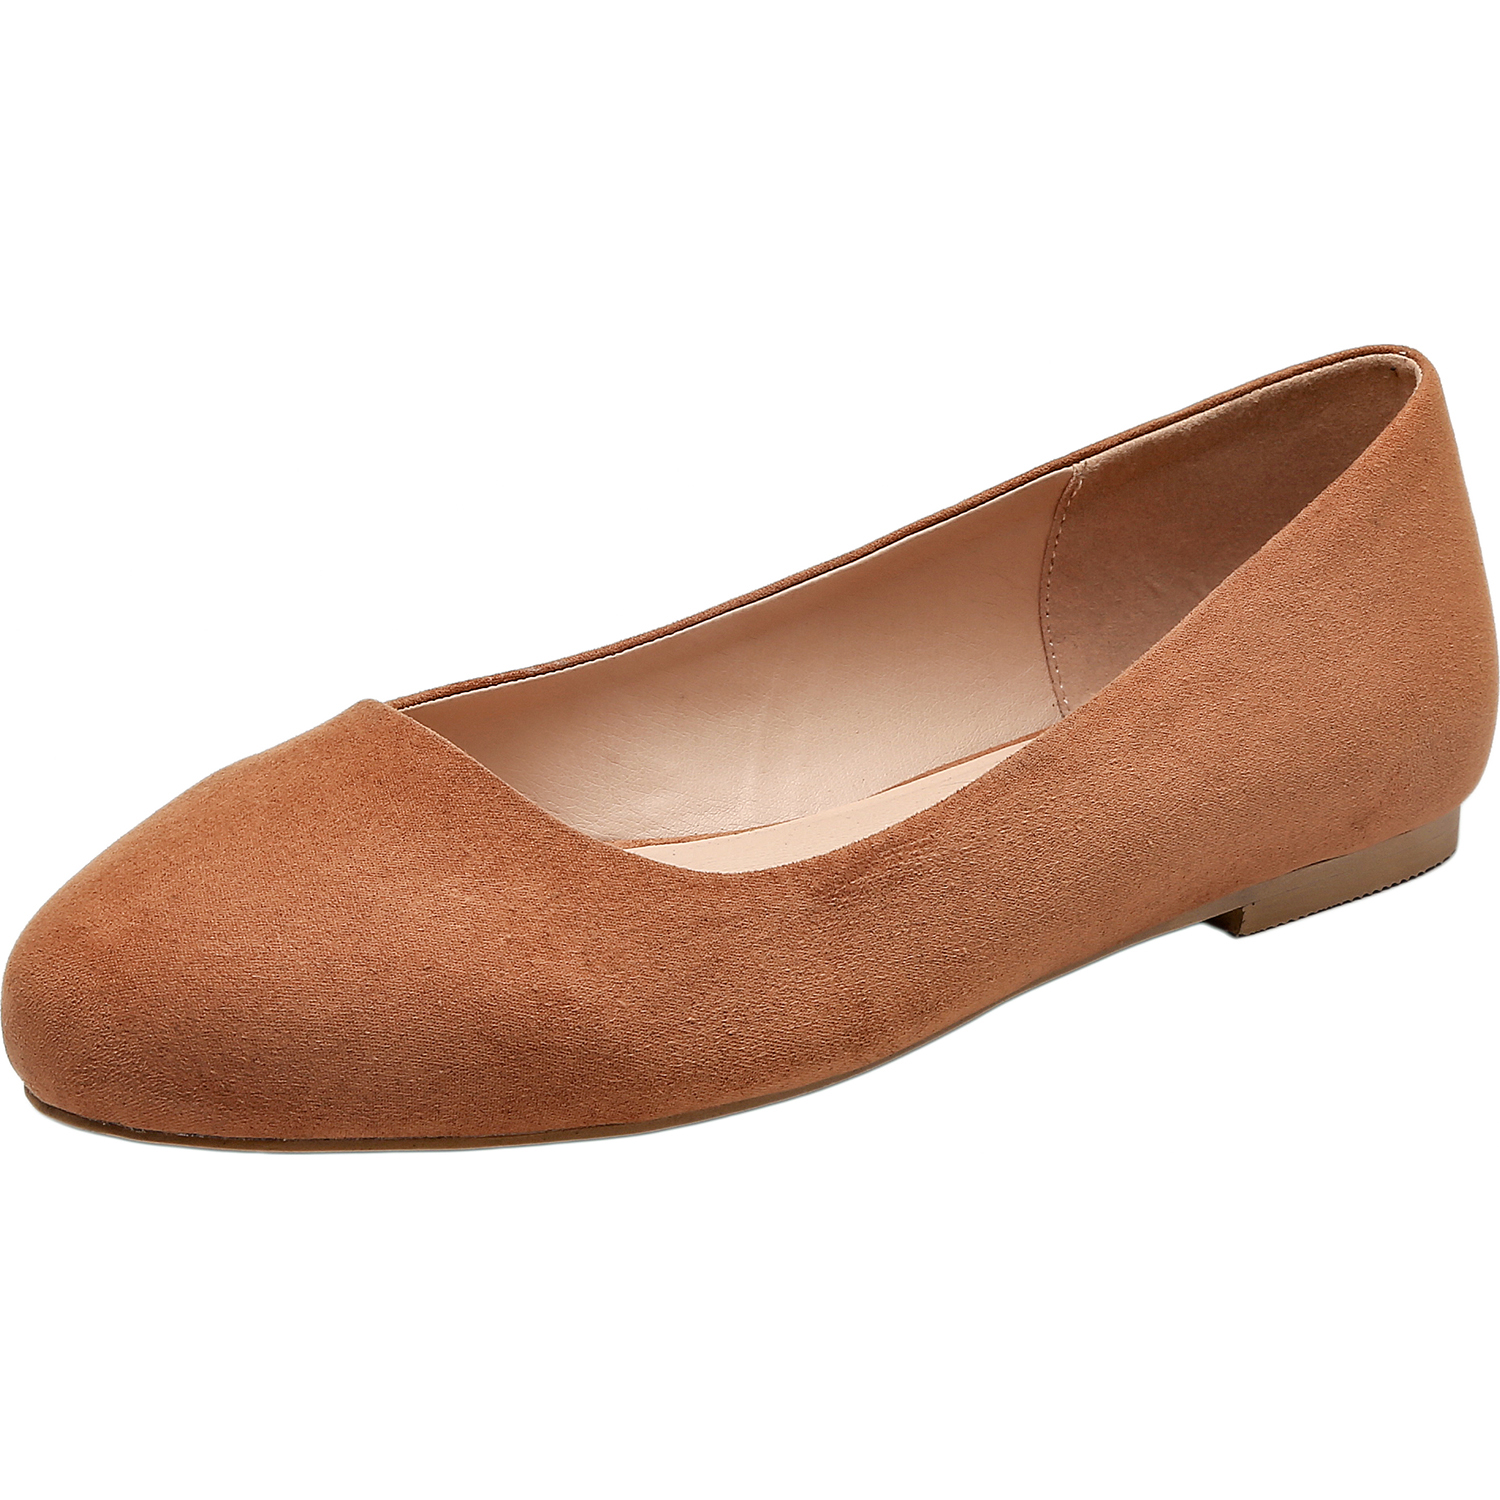 0df2e99dca1a US$ 29.99 - Aukusor Women's Wide Width Flat Shoes - Comfortable Classic  Pointy Toe Slip On Ballet Flat - www.luoika-us.com